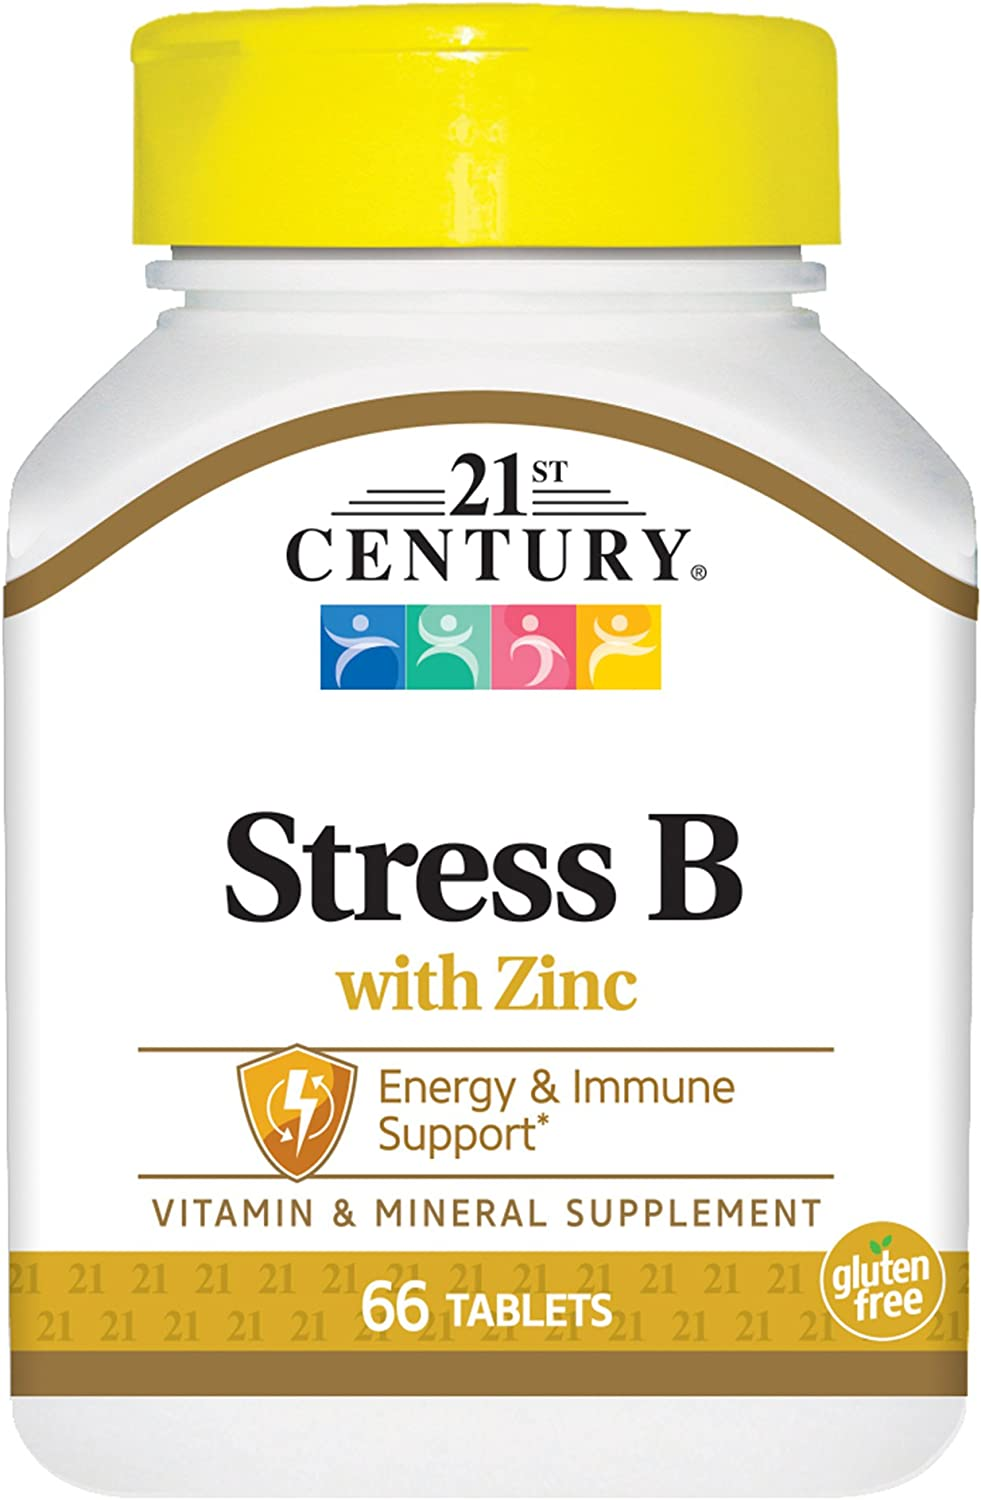 21st Century Stress B with Zinc Tablets, 66 Count (Pack of 2)